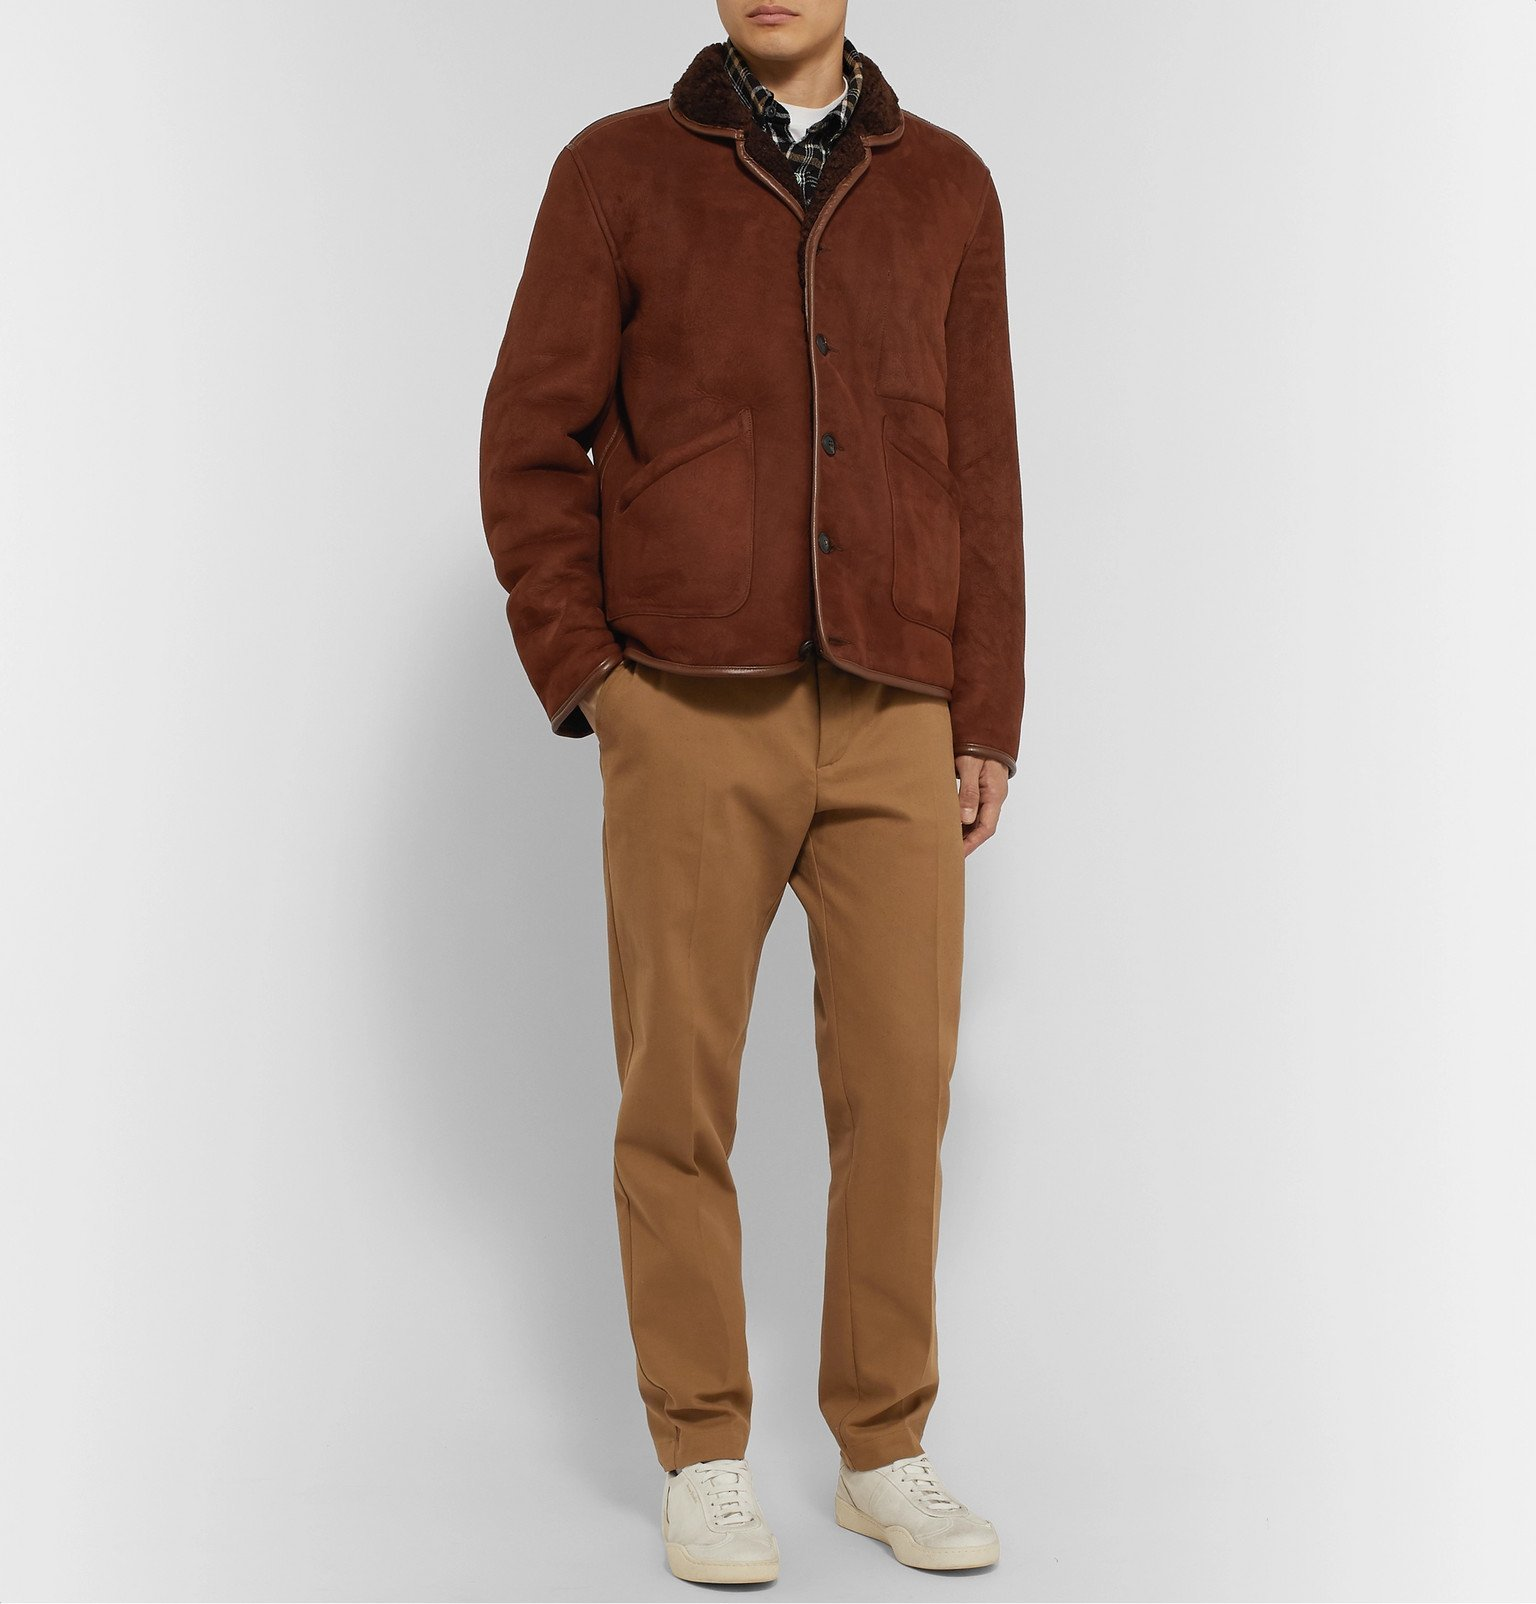 YMC - Leather-Trimmed Shearling Jacket - Brown